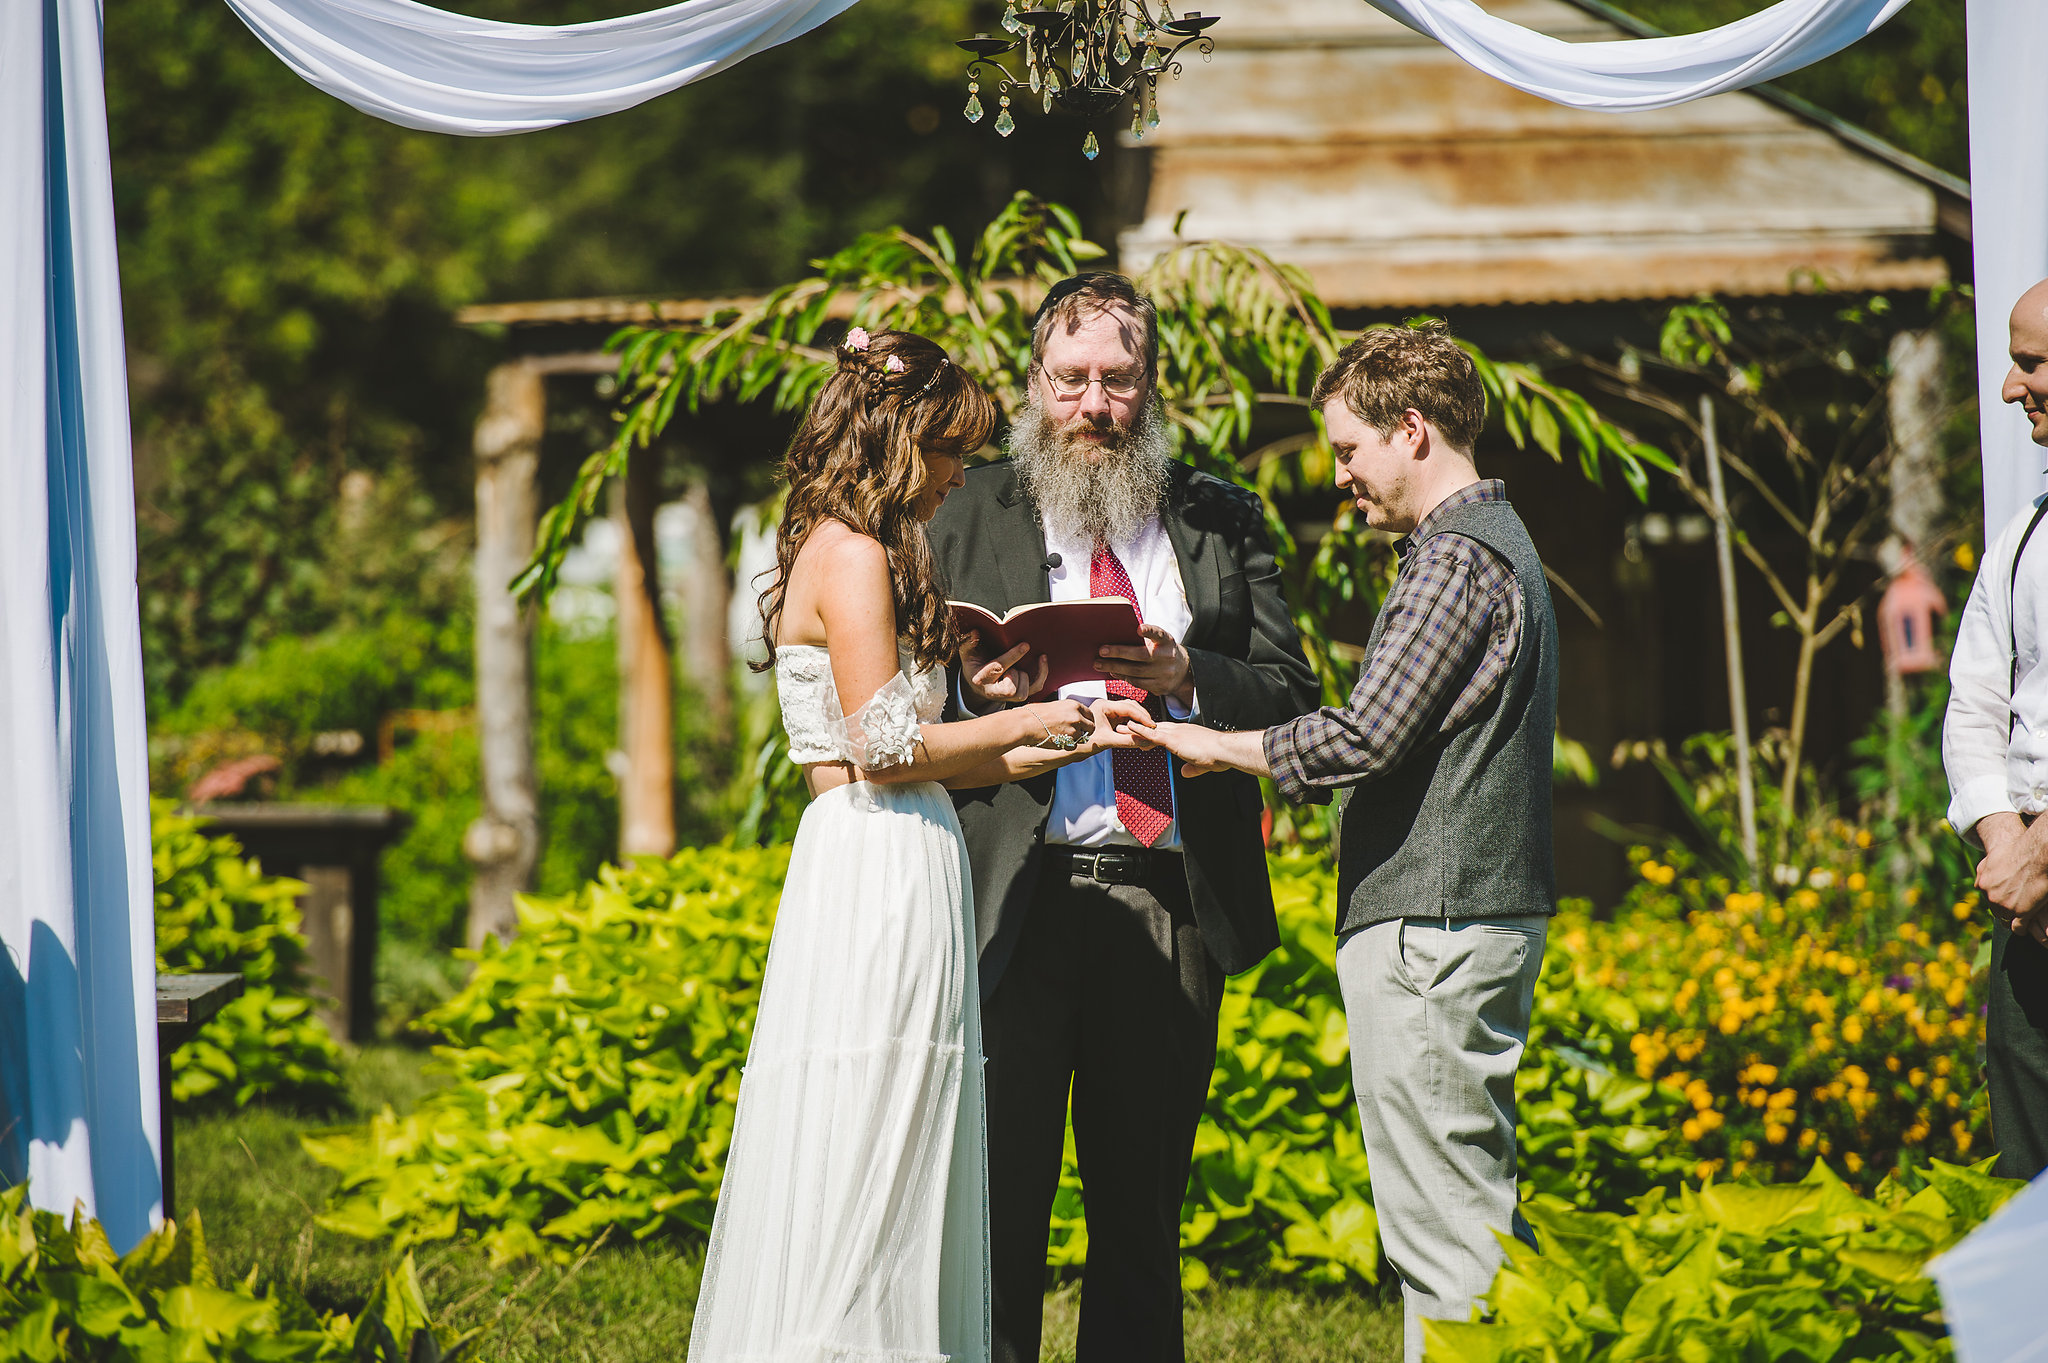 Summer farm wedding ceremony